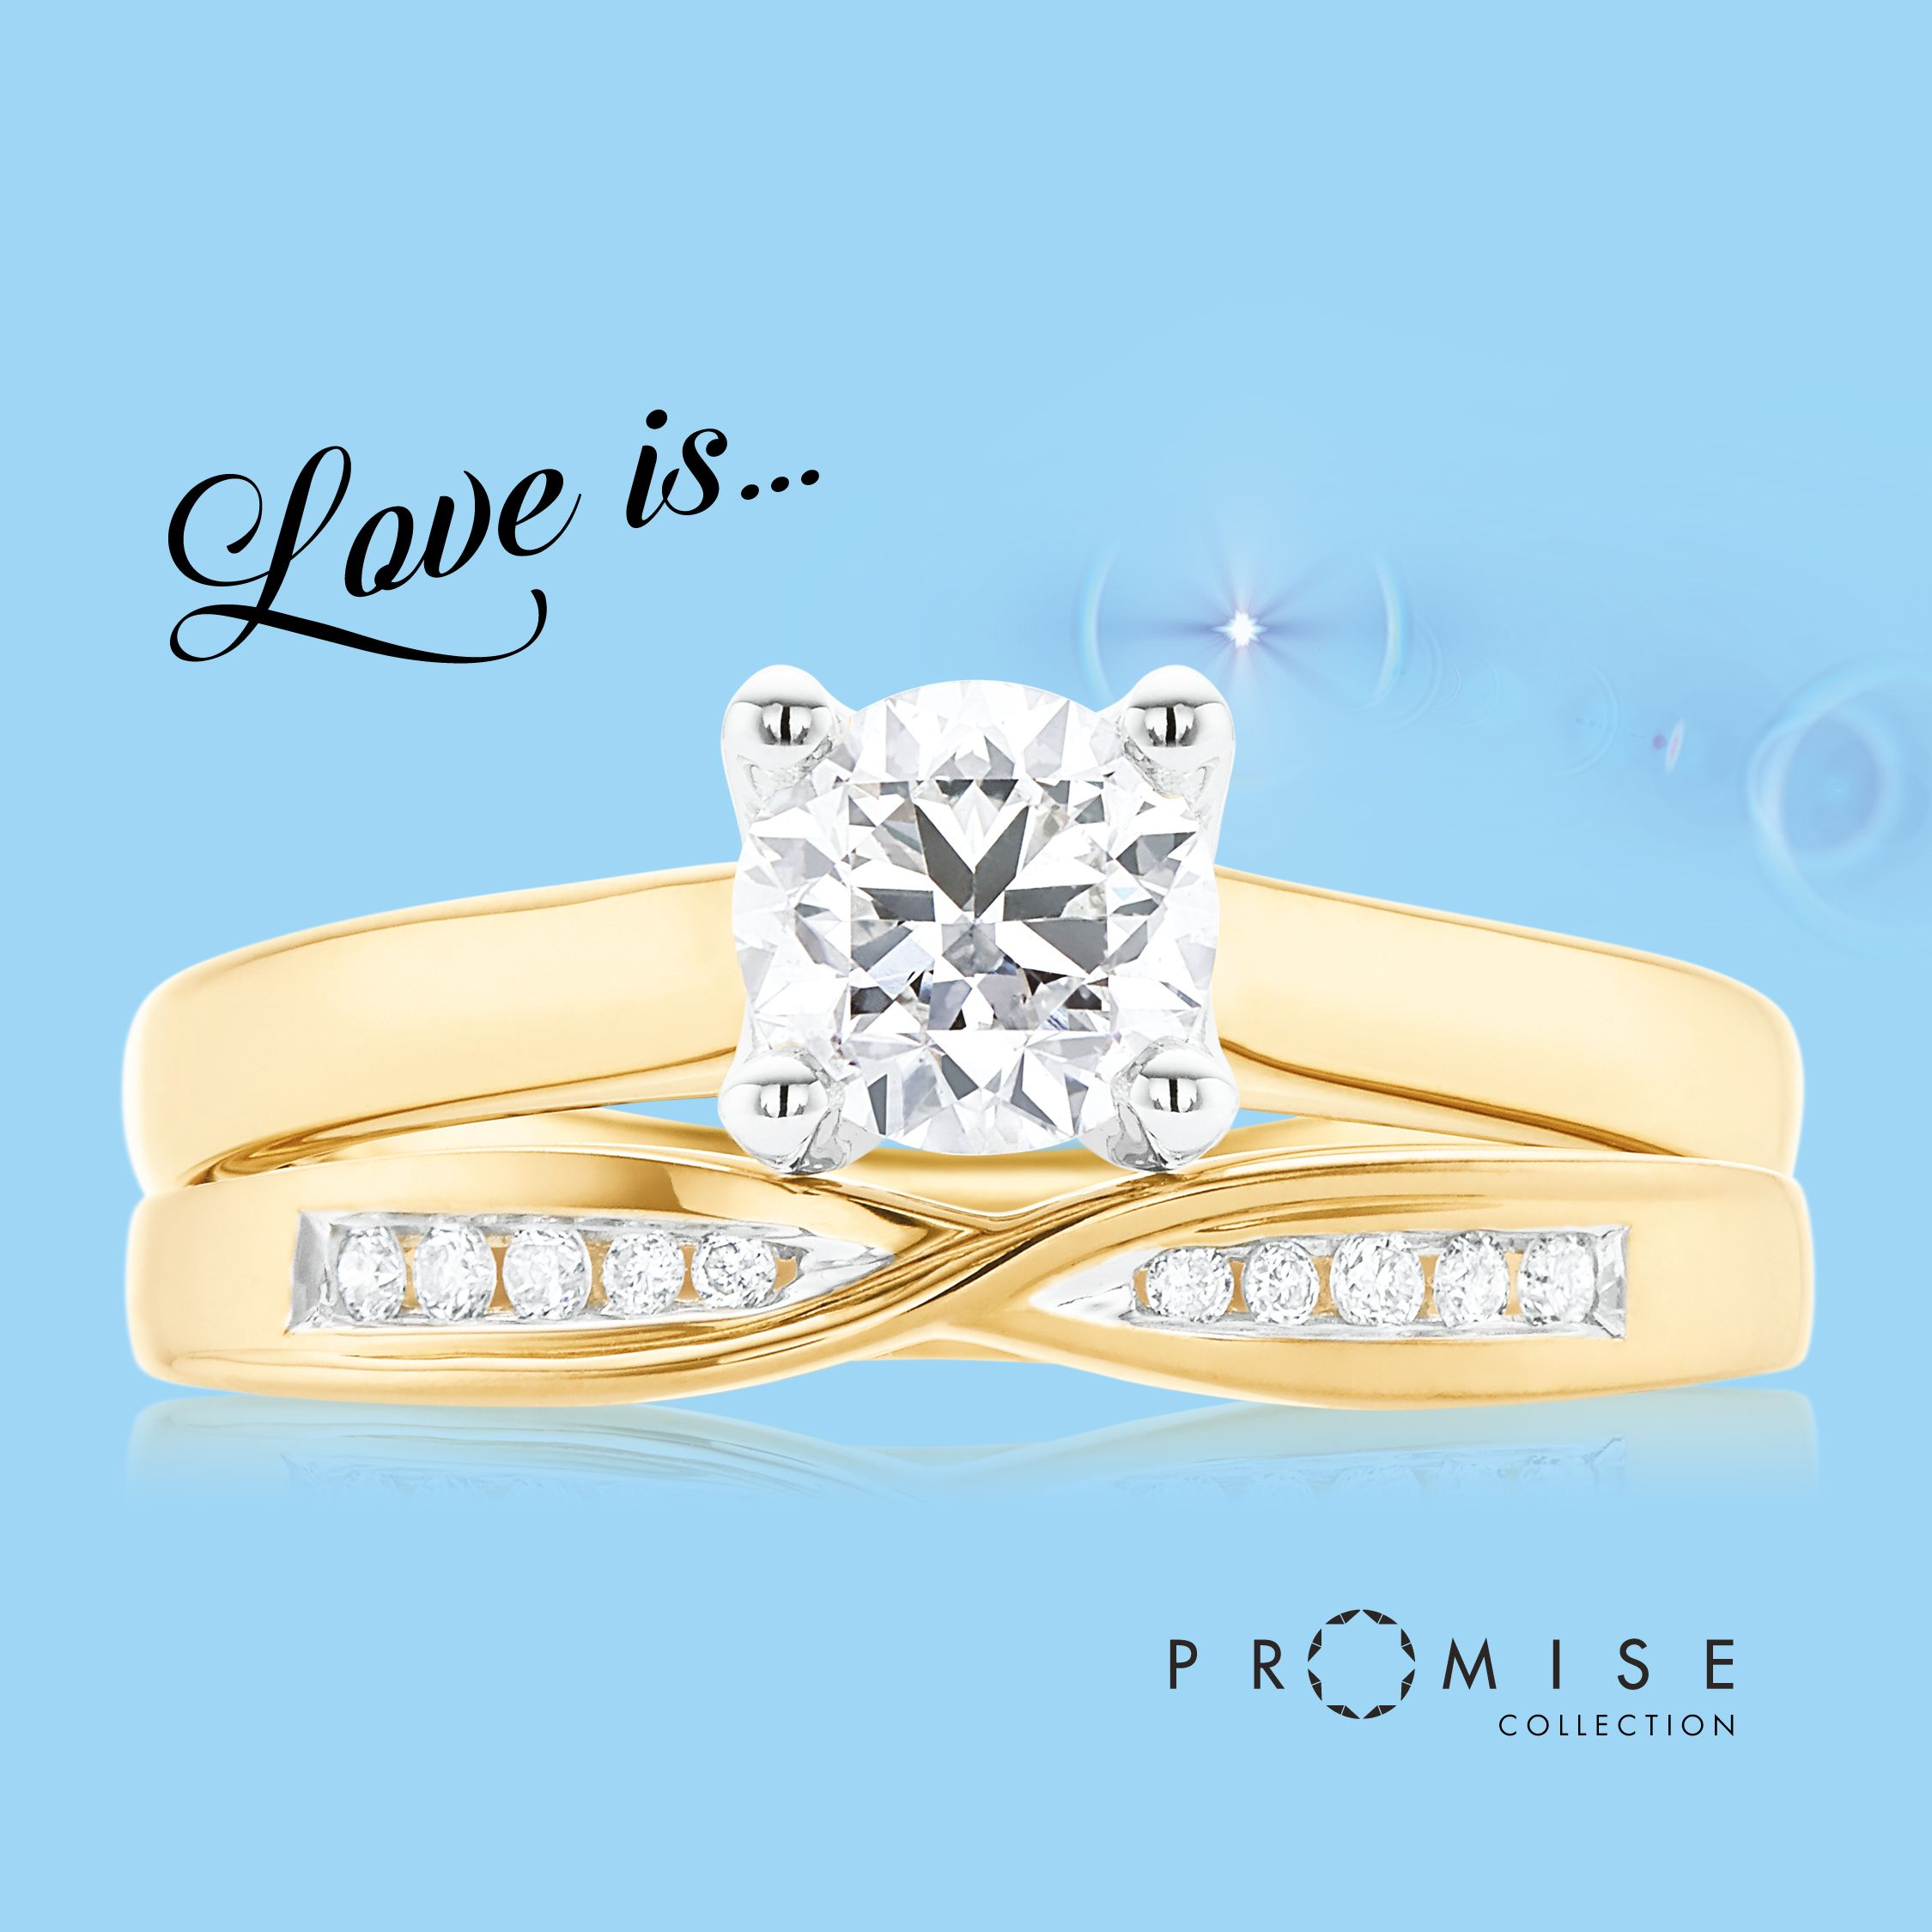 The Promise Collection available exclusively at Mazzucchelli s